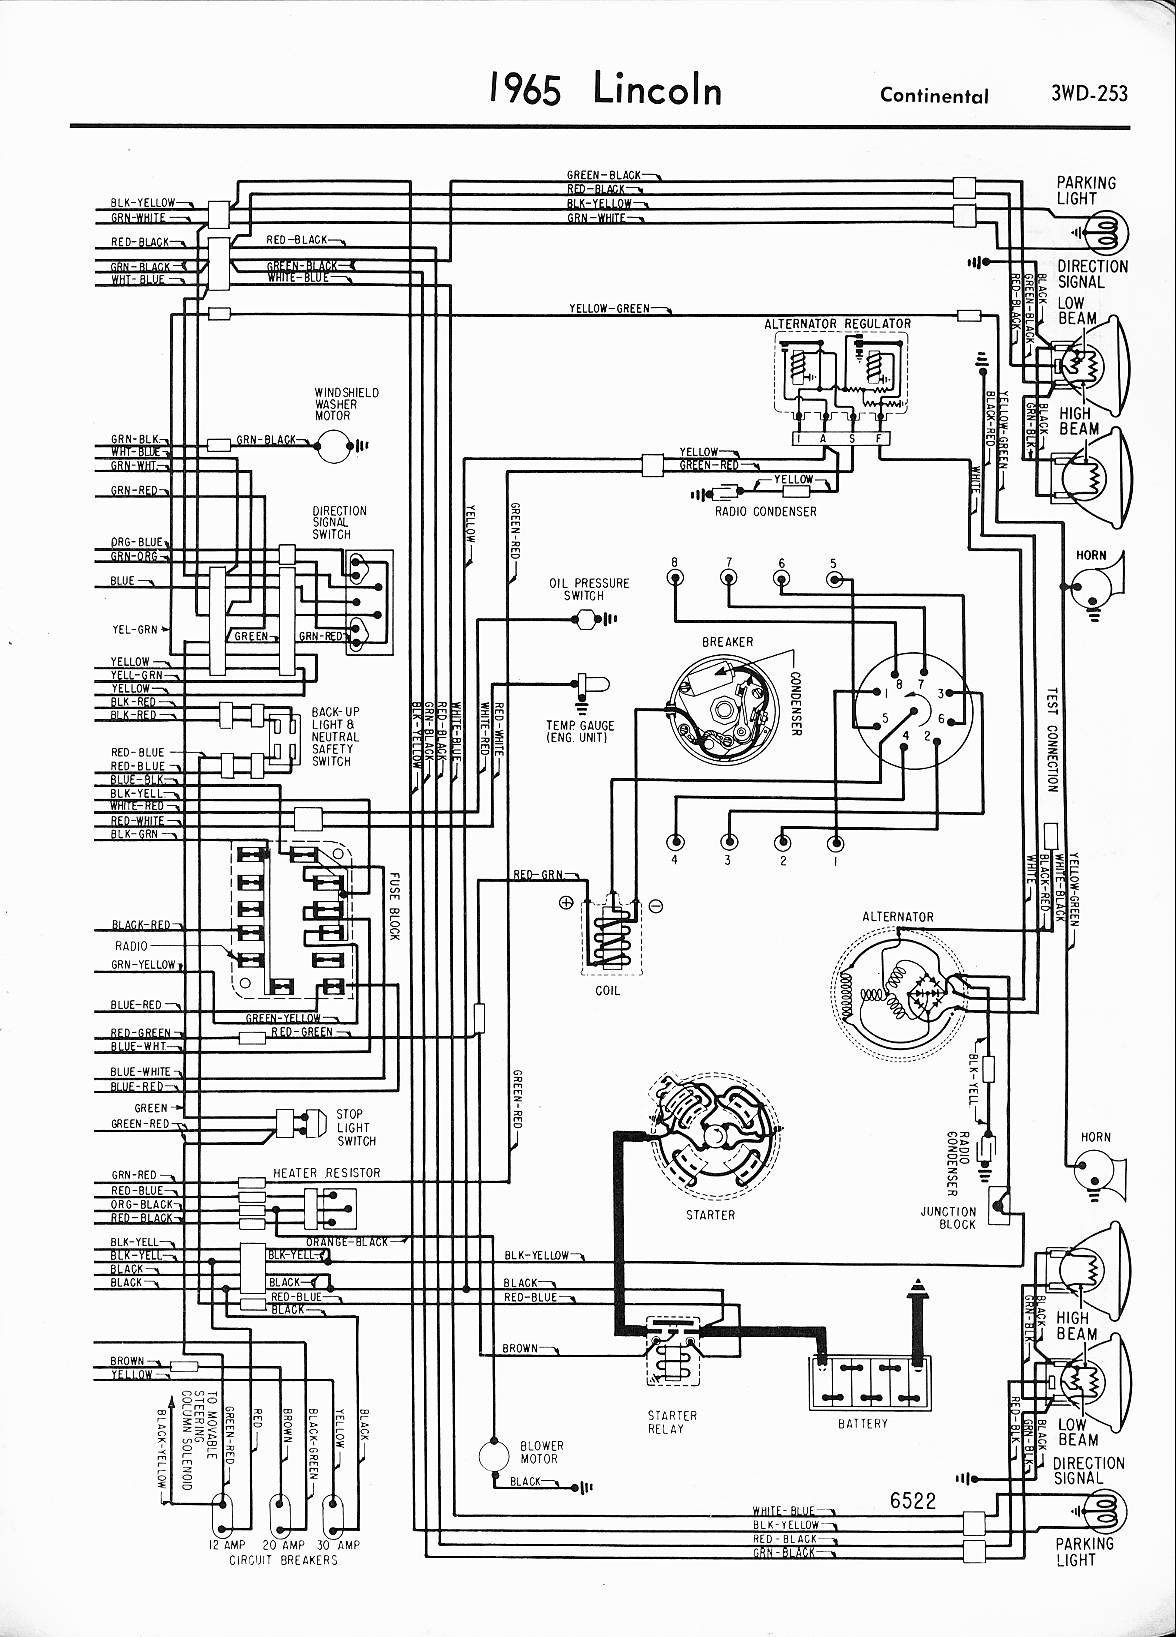 hight resolution of 1994 lincoln wiring diagrams simple wiring diagram 1966 chevrolet impala wiring diagram 1966 lincoln wiring diagram